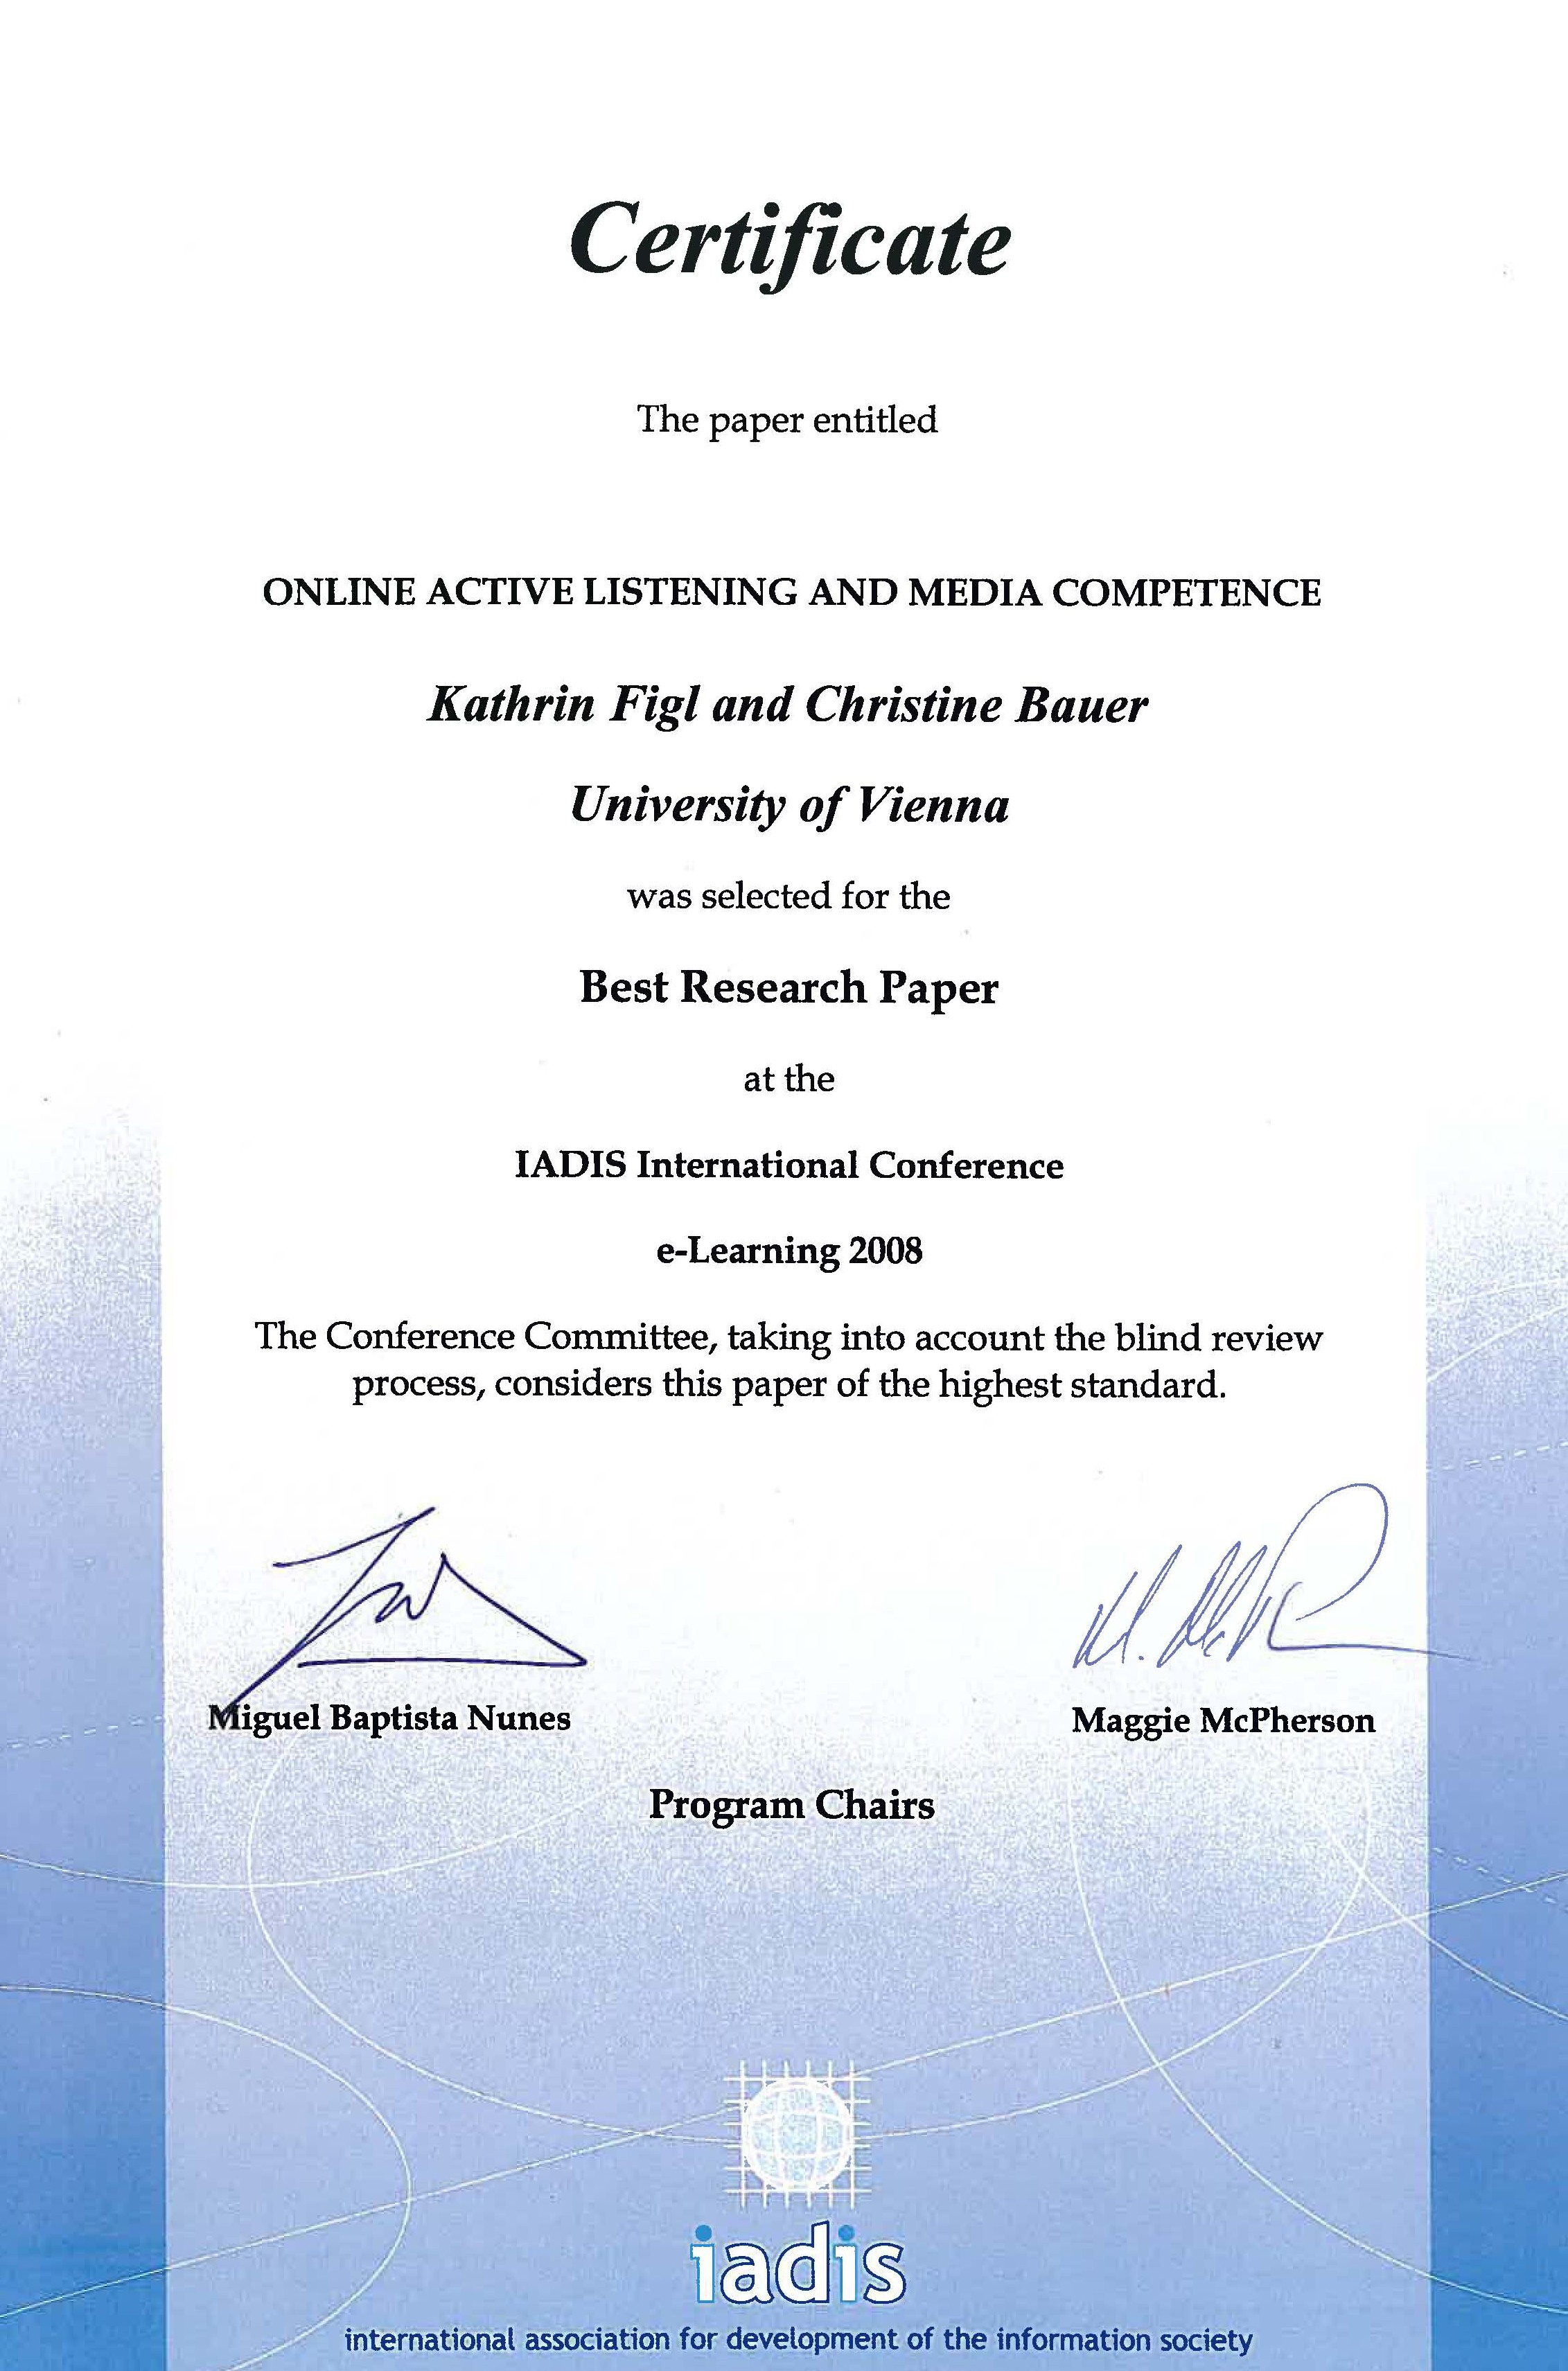 team and media competencies in information systems figl kathrin